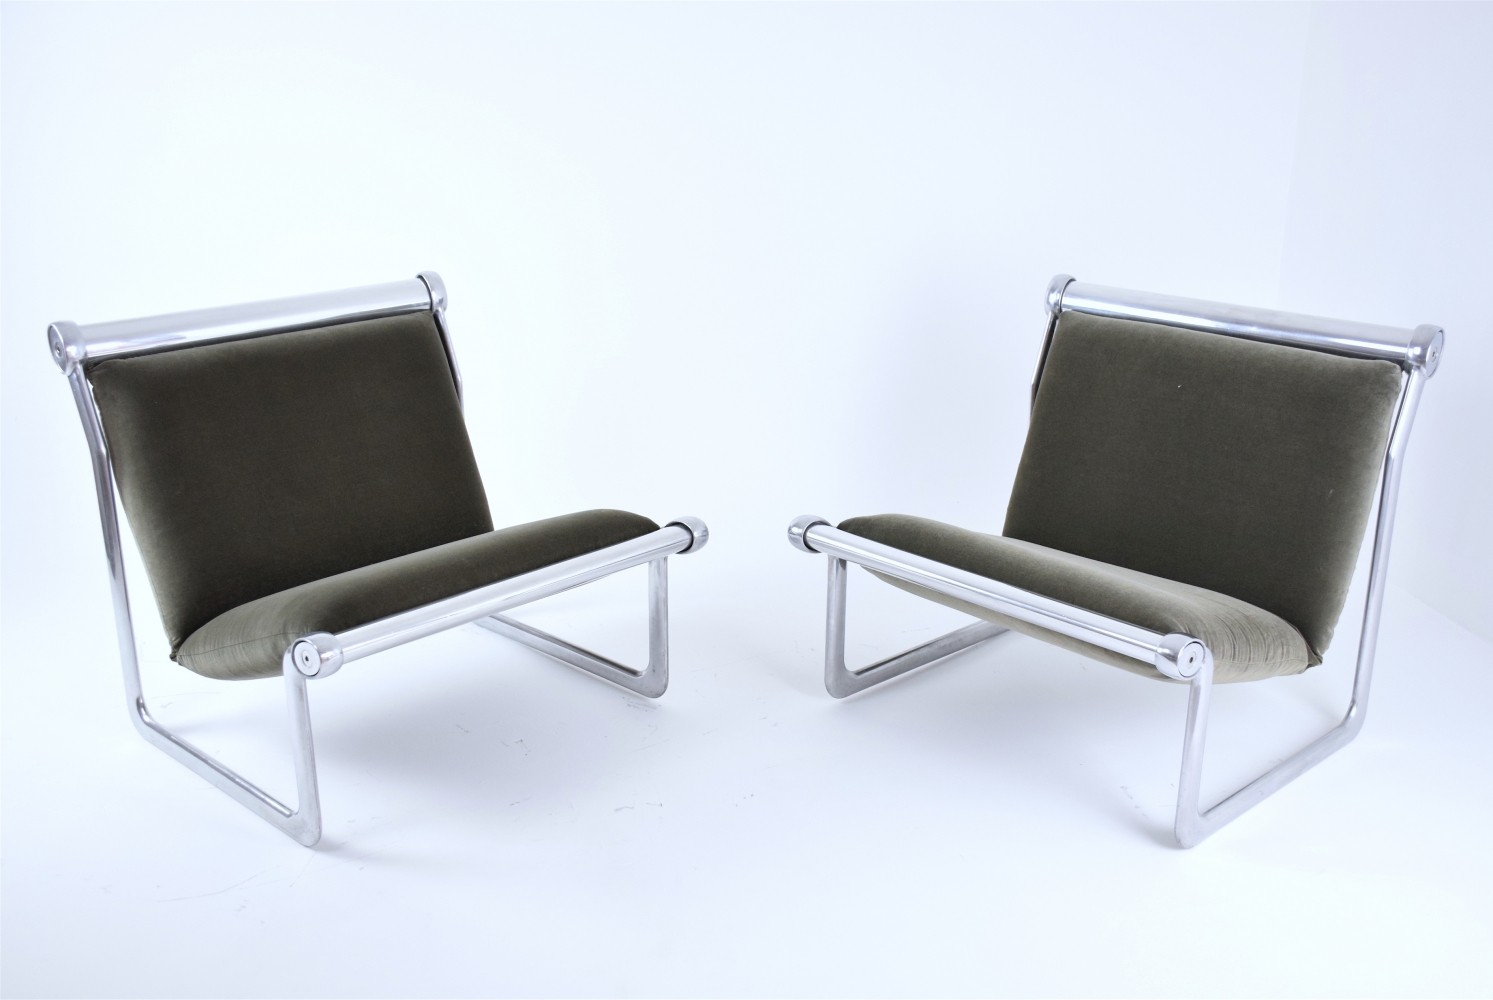 Superior Pair Of Sling Lounge Chairs By Hannah Morrison For Knoll, 1970u0027s Great Ideas